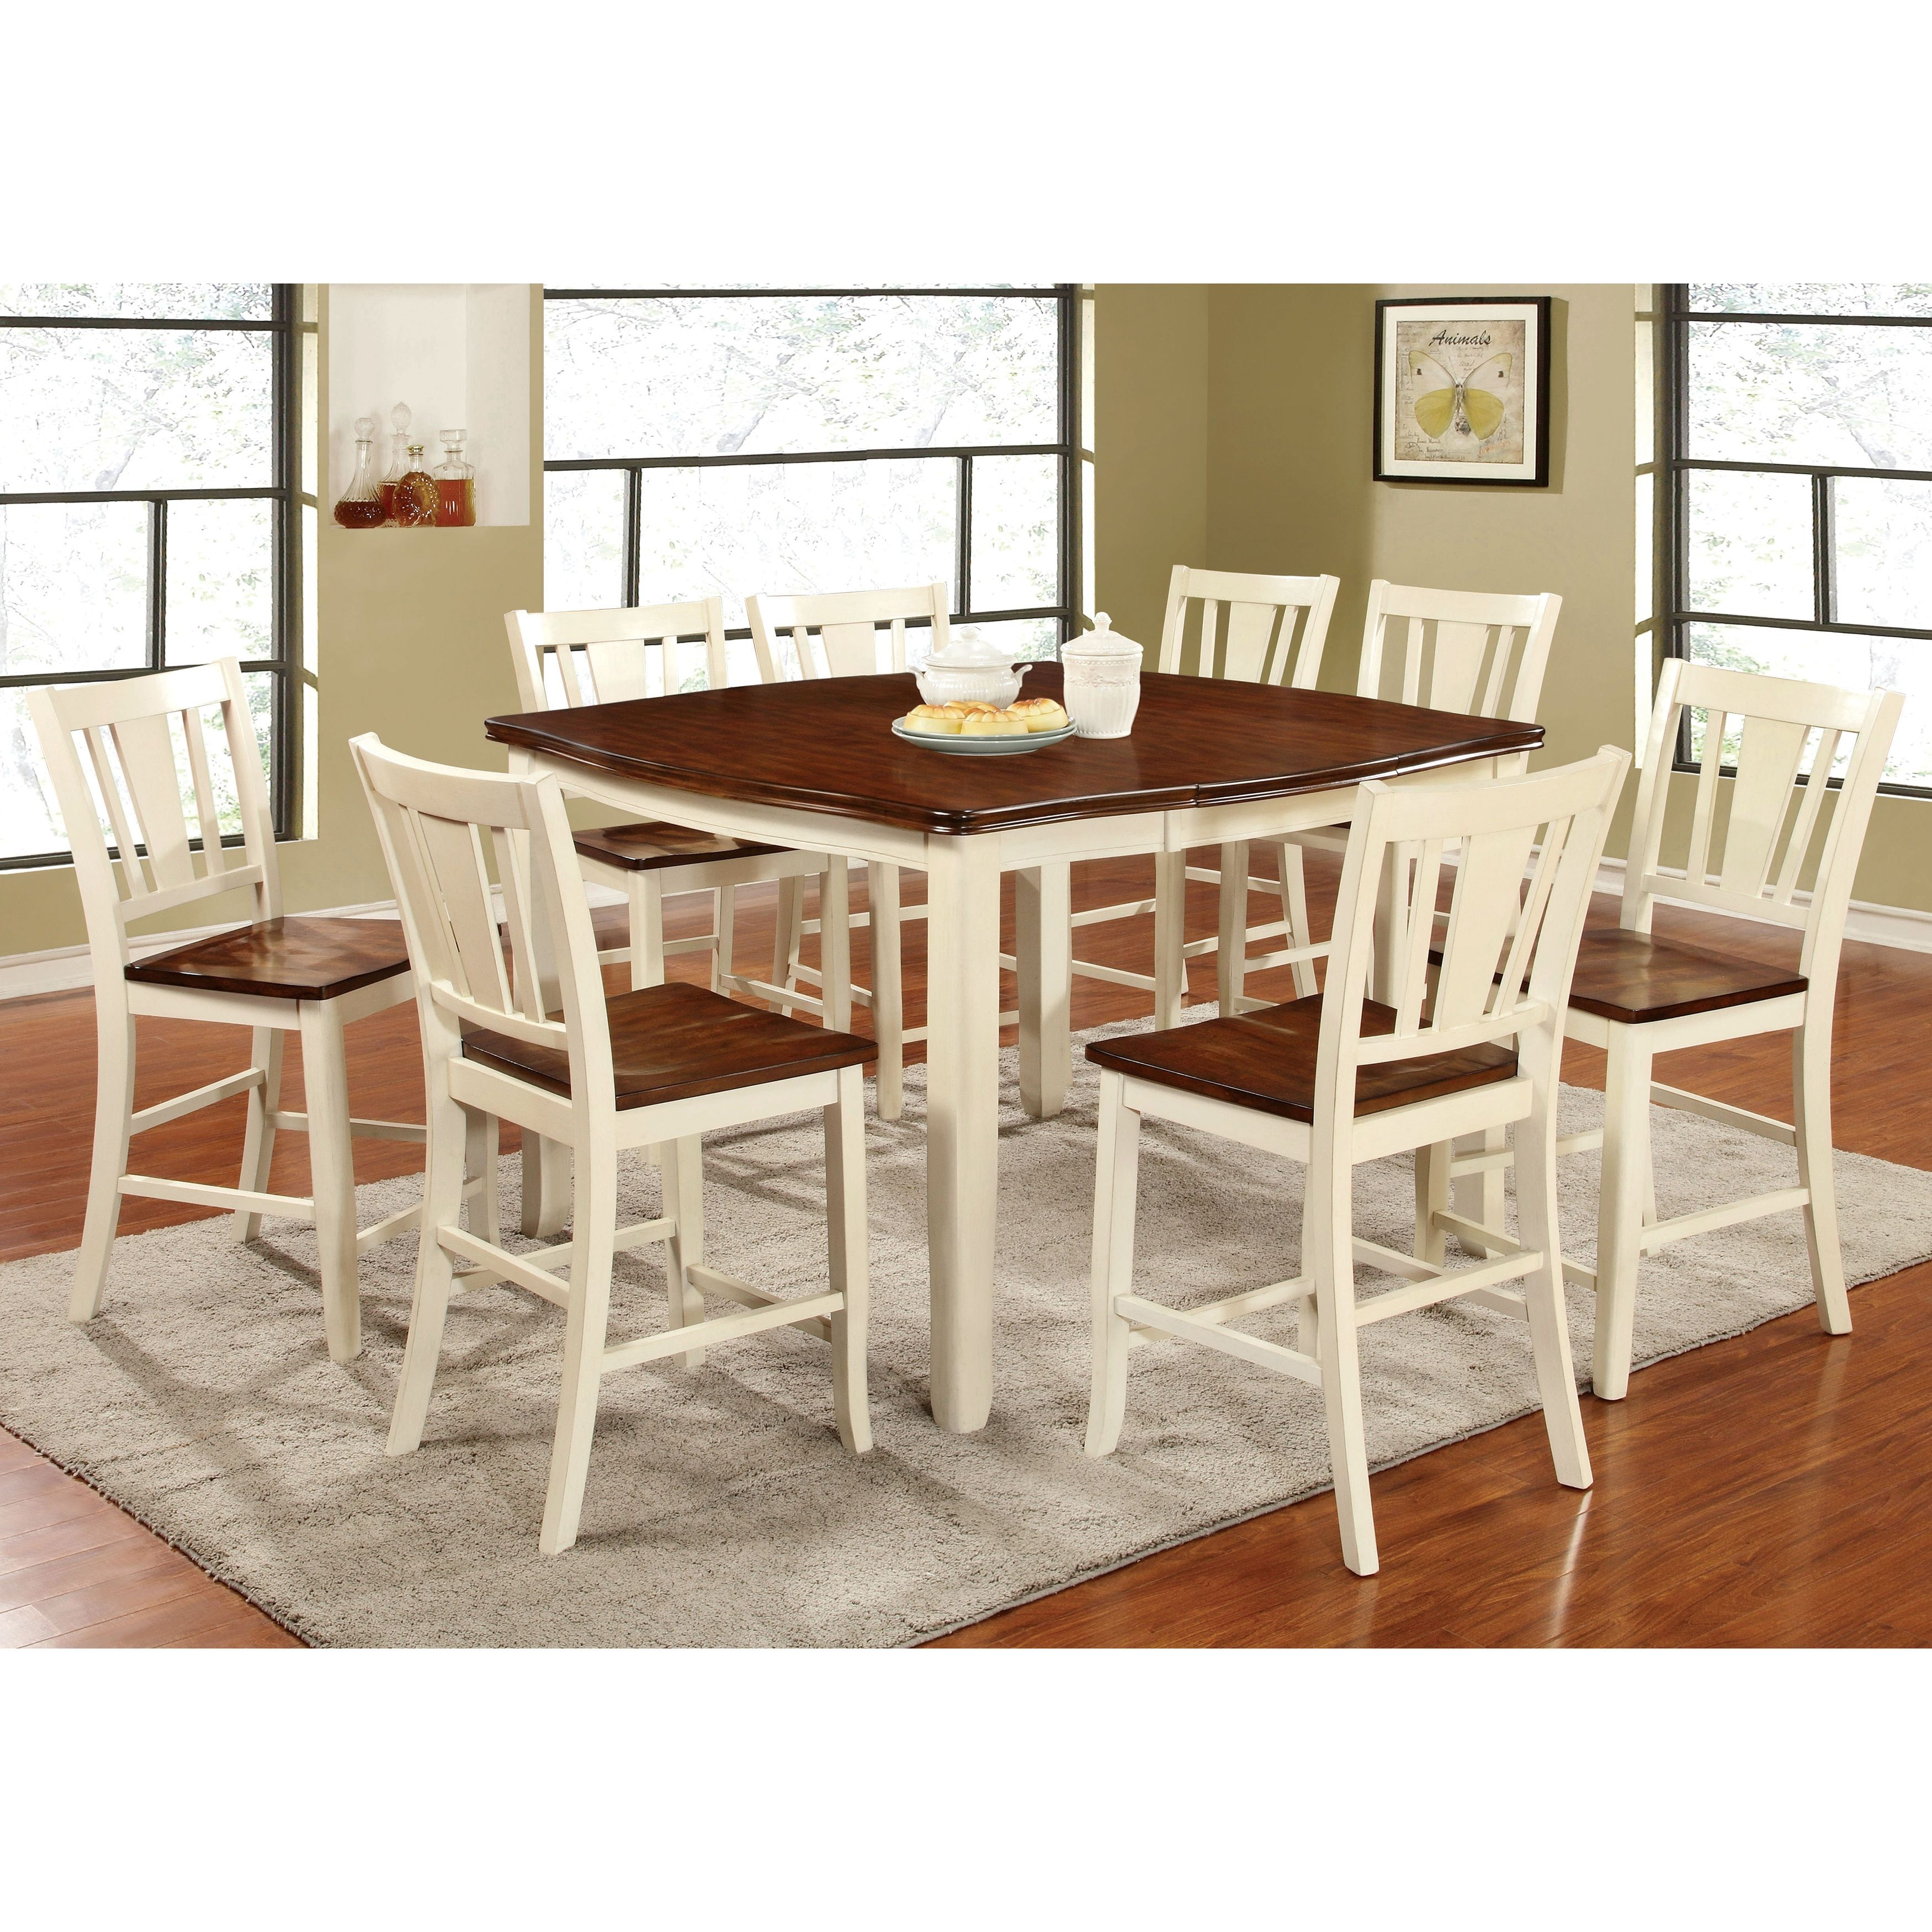 Merveilleux Furniture Of America Betsy Jane 9 Piece Country Style Counter Height Dining  Set (Antique